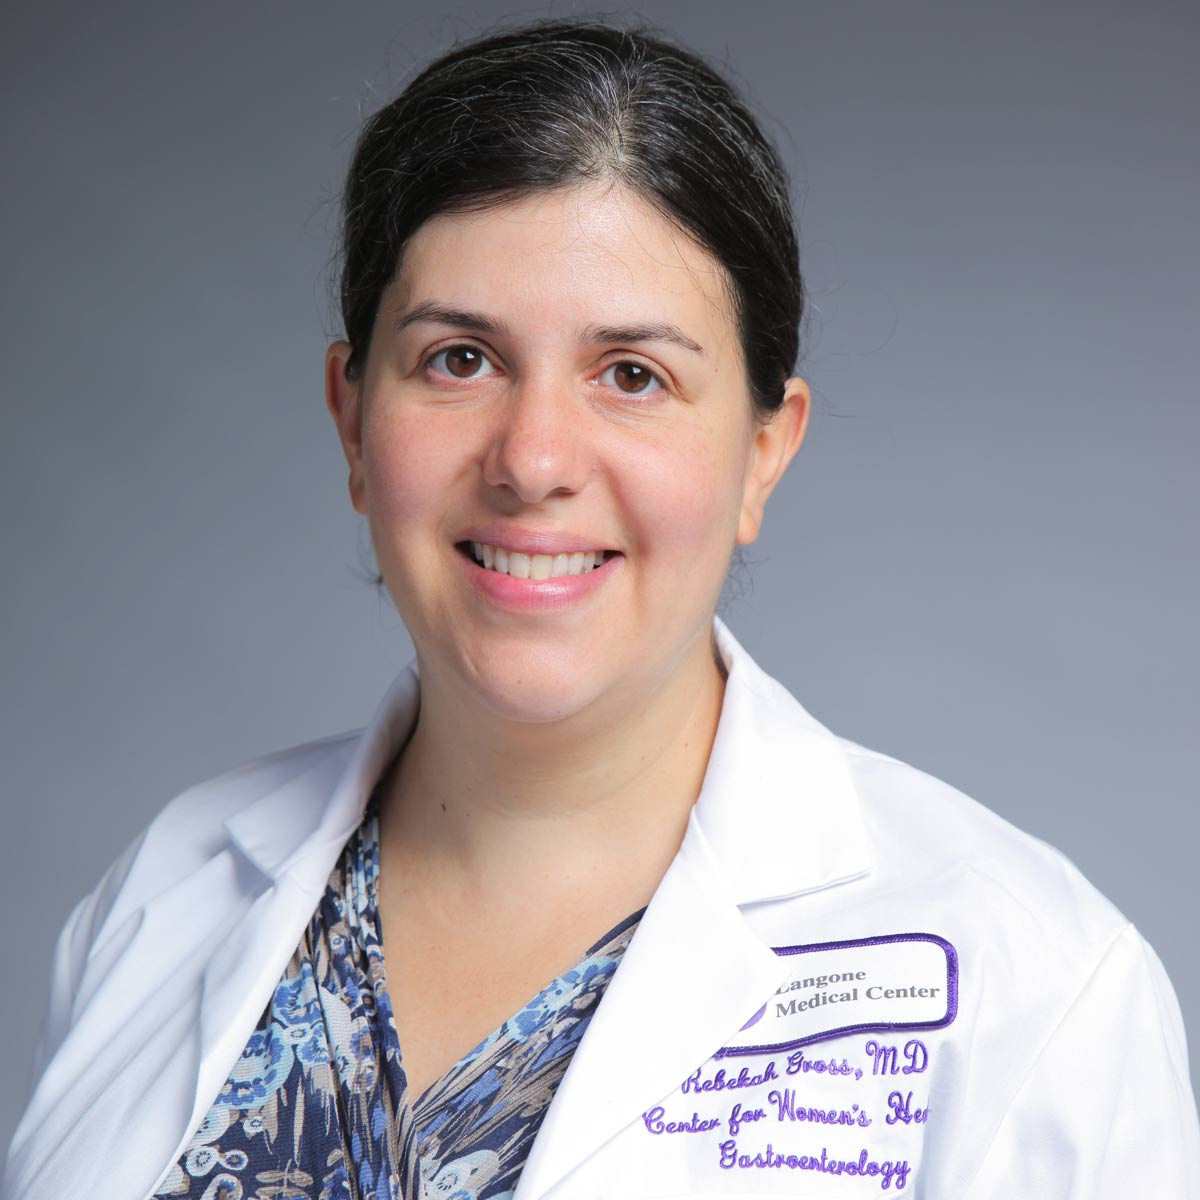 Rebekah Gross at [NYU Langone Medical Center]